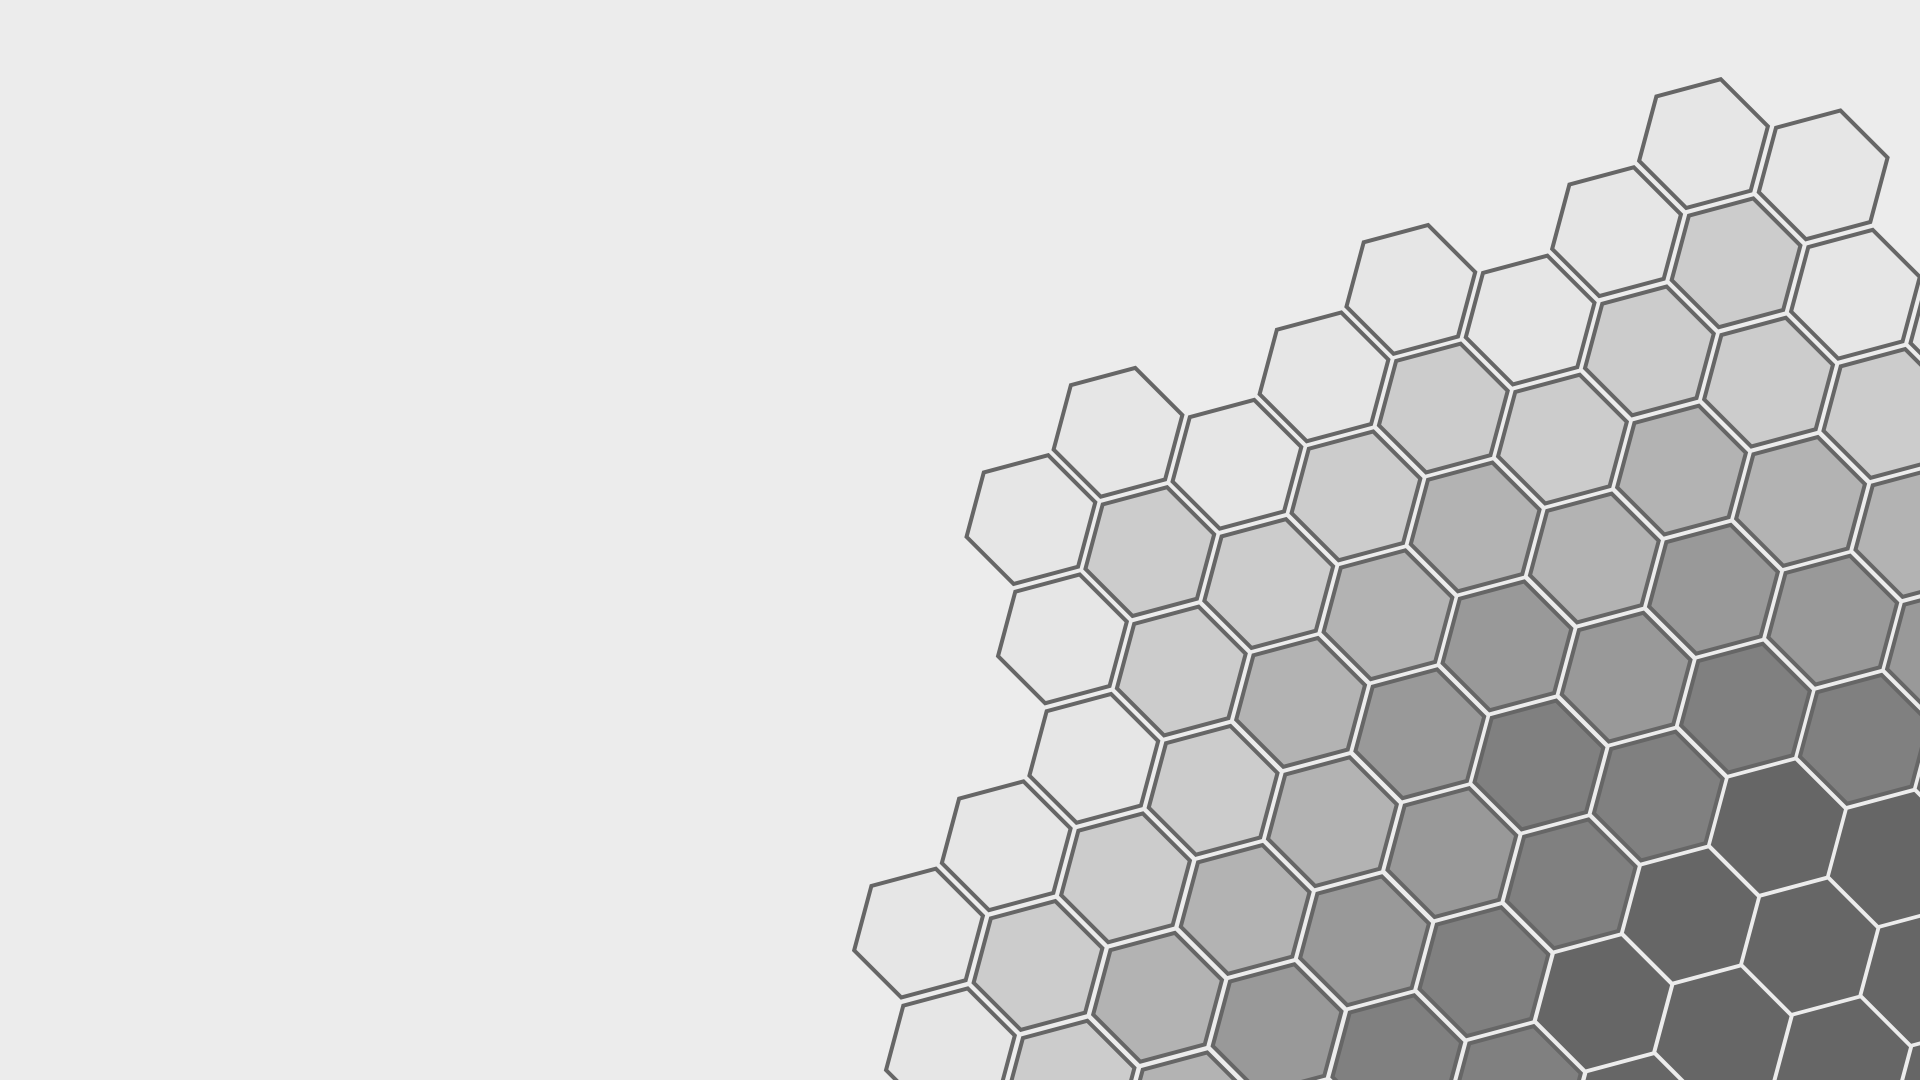 Wallpapers :: patterns, minimalistic, abstract, honeycomb ...